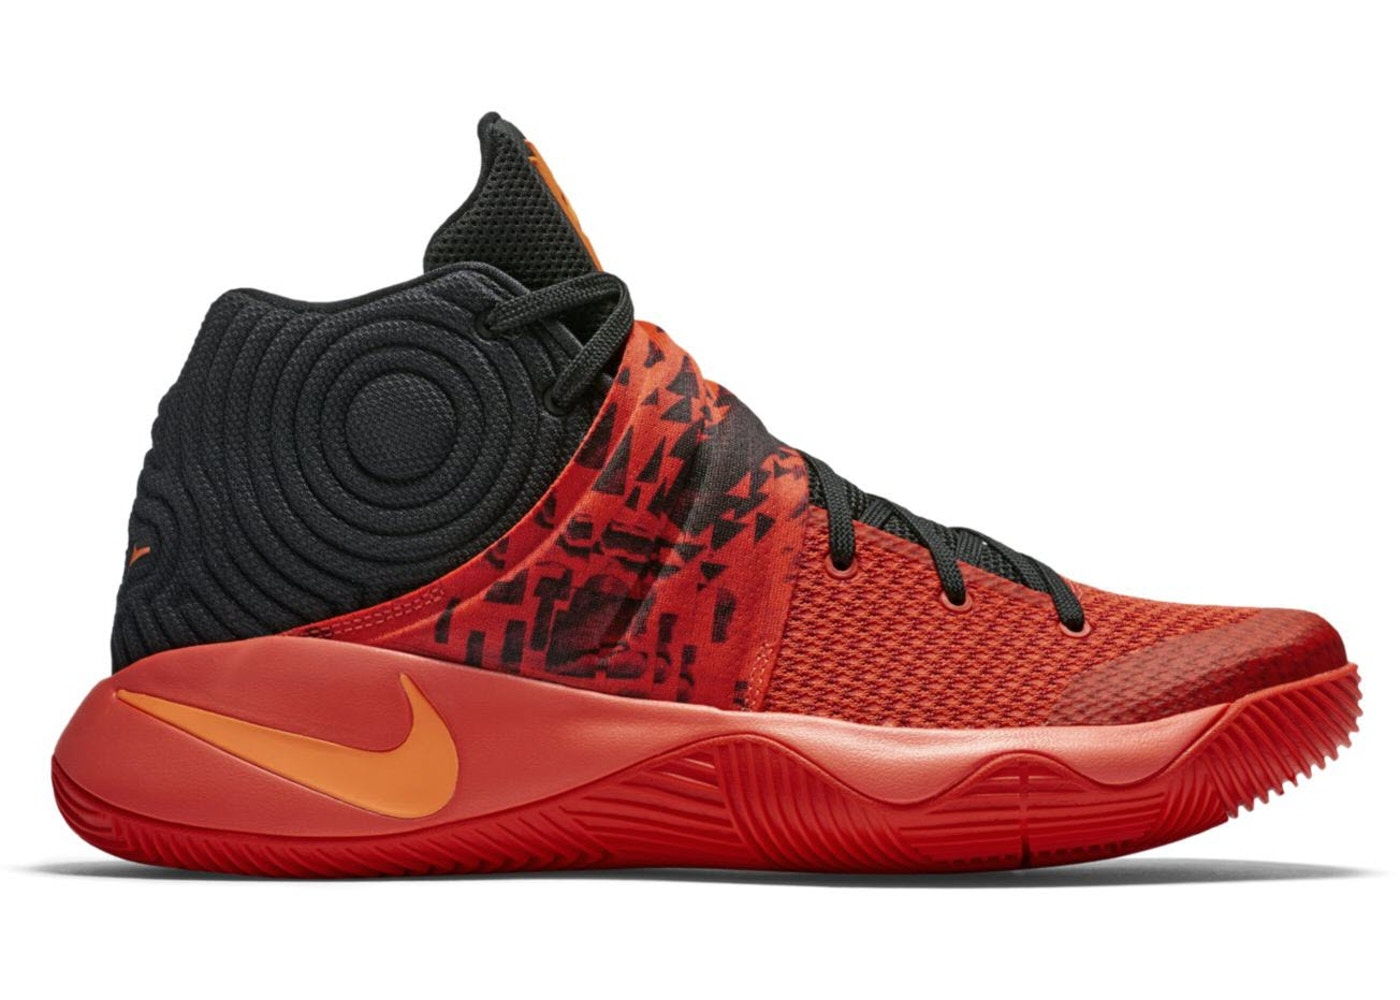 separation shoes 51c15 5d94c Kyrie 2 Inferno - 819583-680